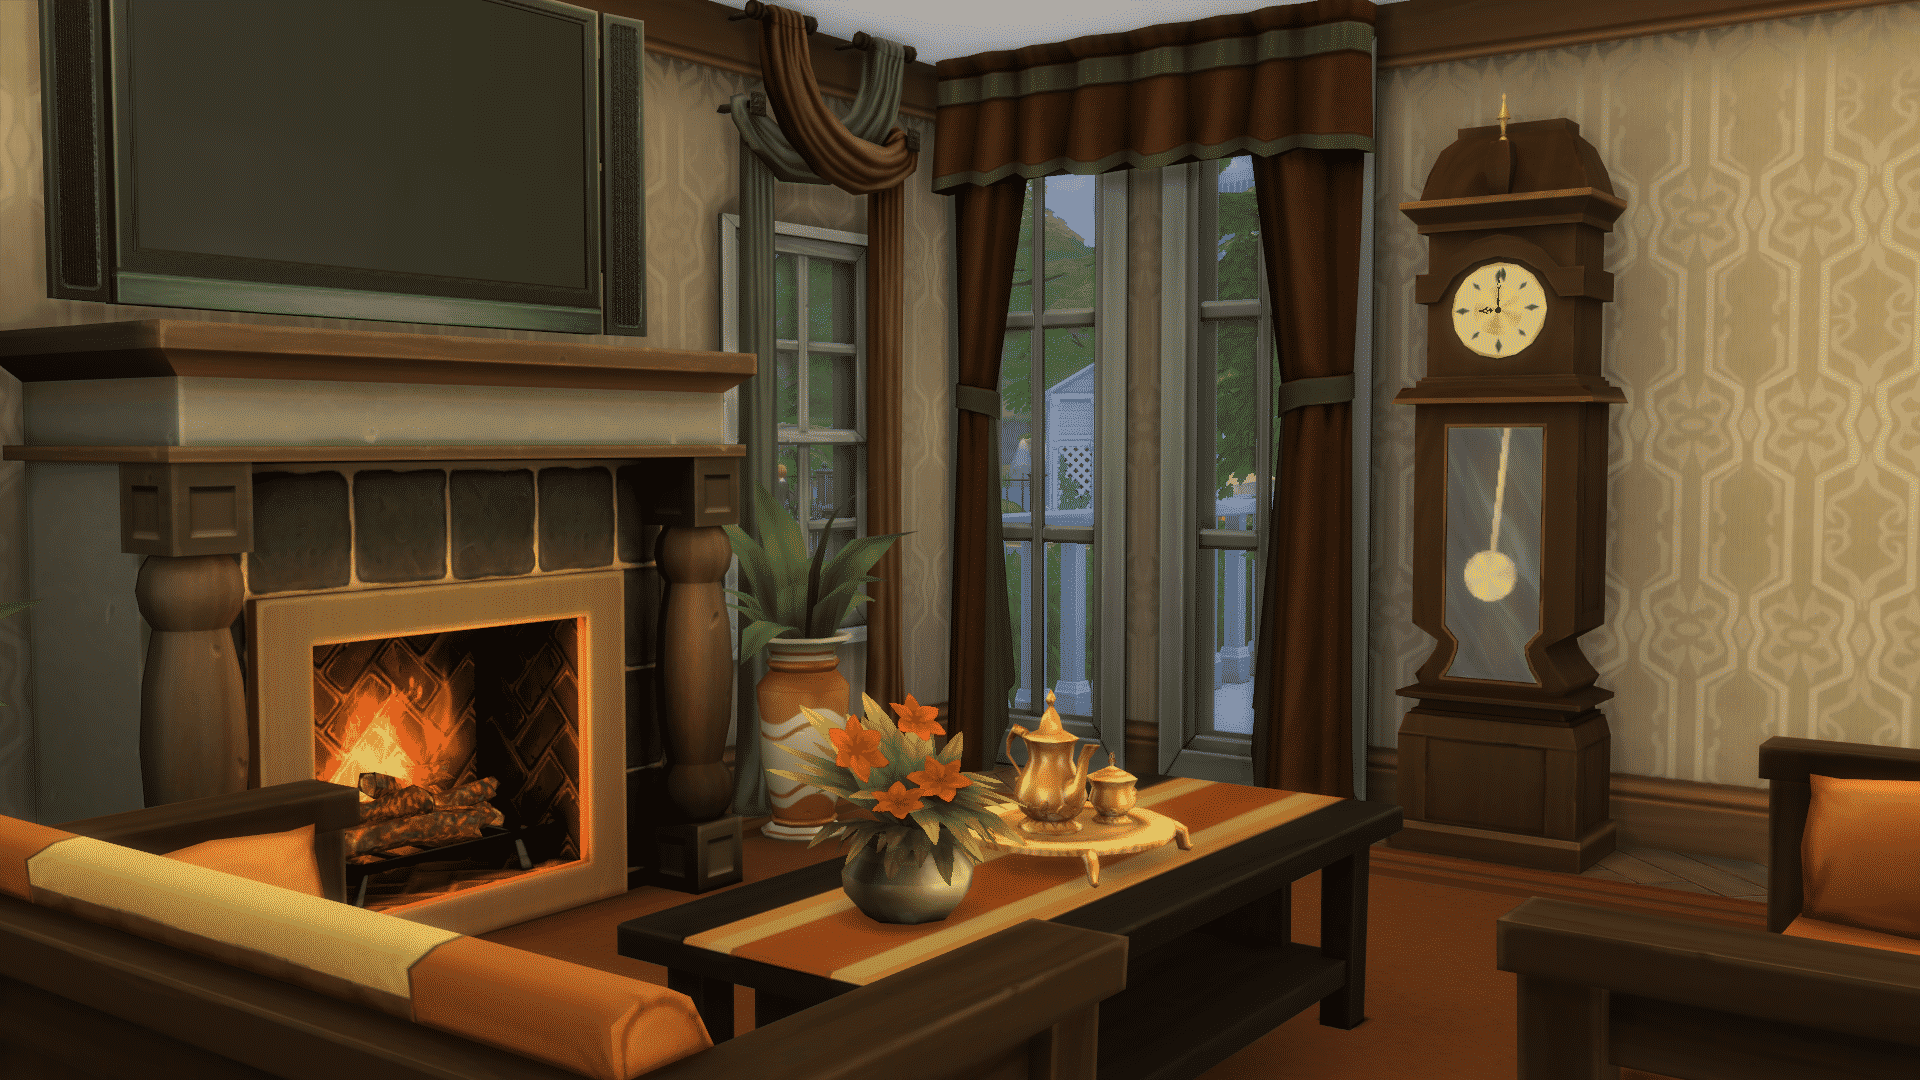 The Sims 4 Mod Animated Grandfather S Clock